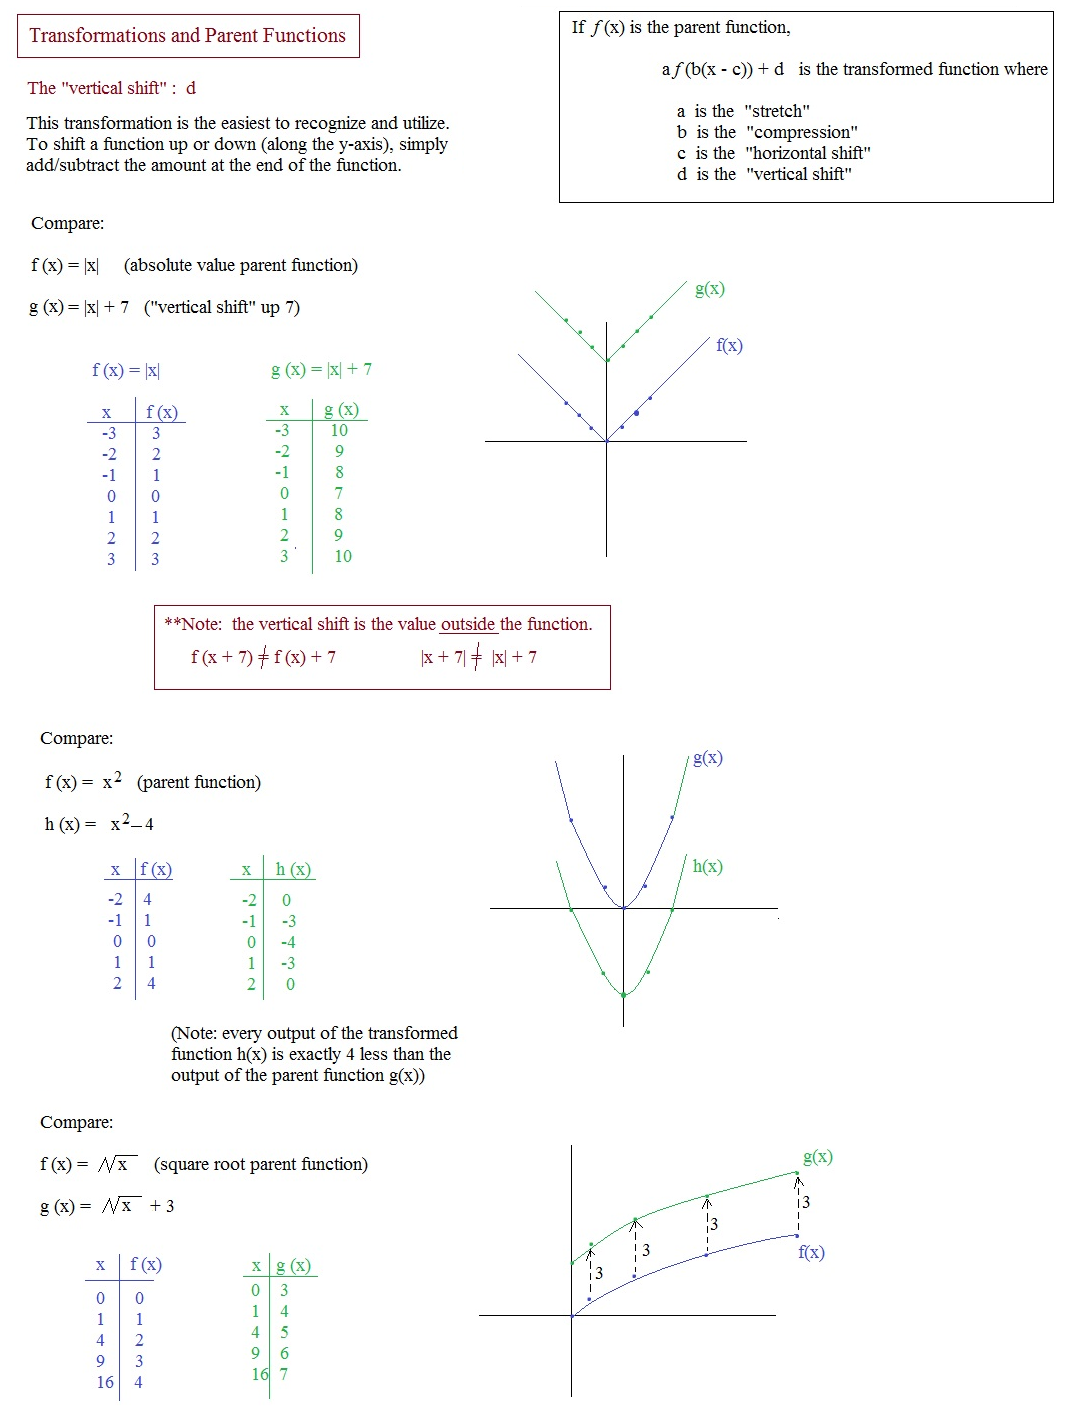 Math Plane - Graphing I - Transformations & Parent Functions